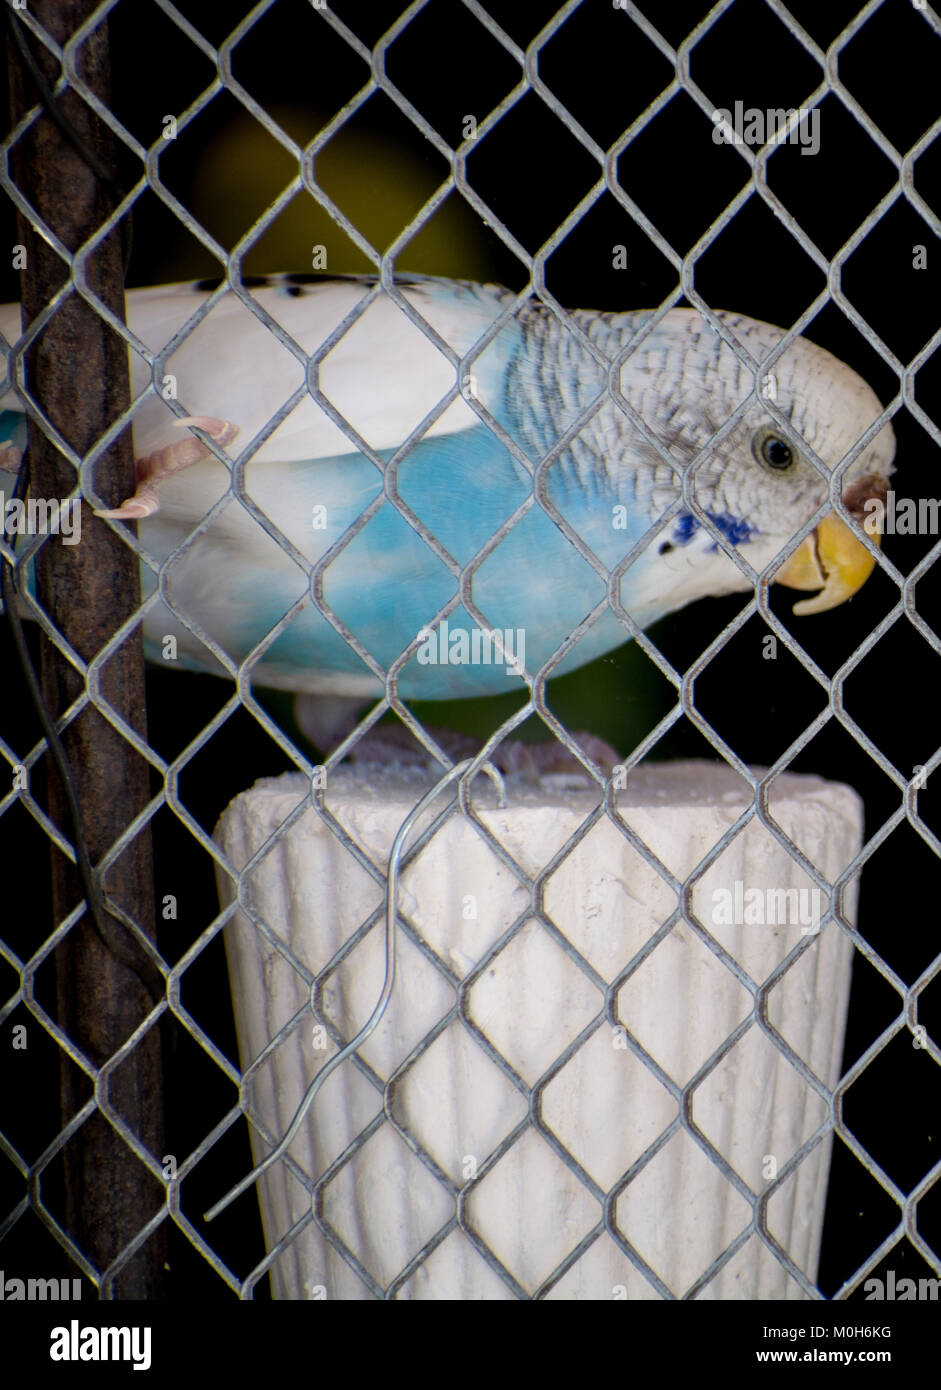 Parrot In Cage Stock Photos & Parrot In Cage Stock Images - Alamy